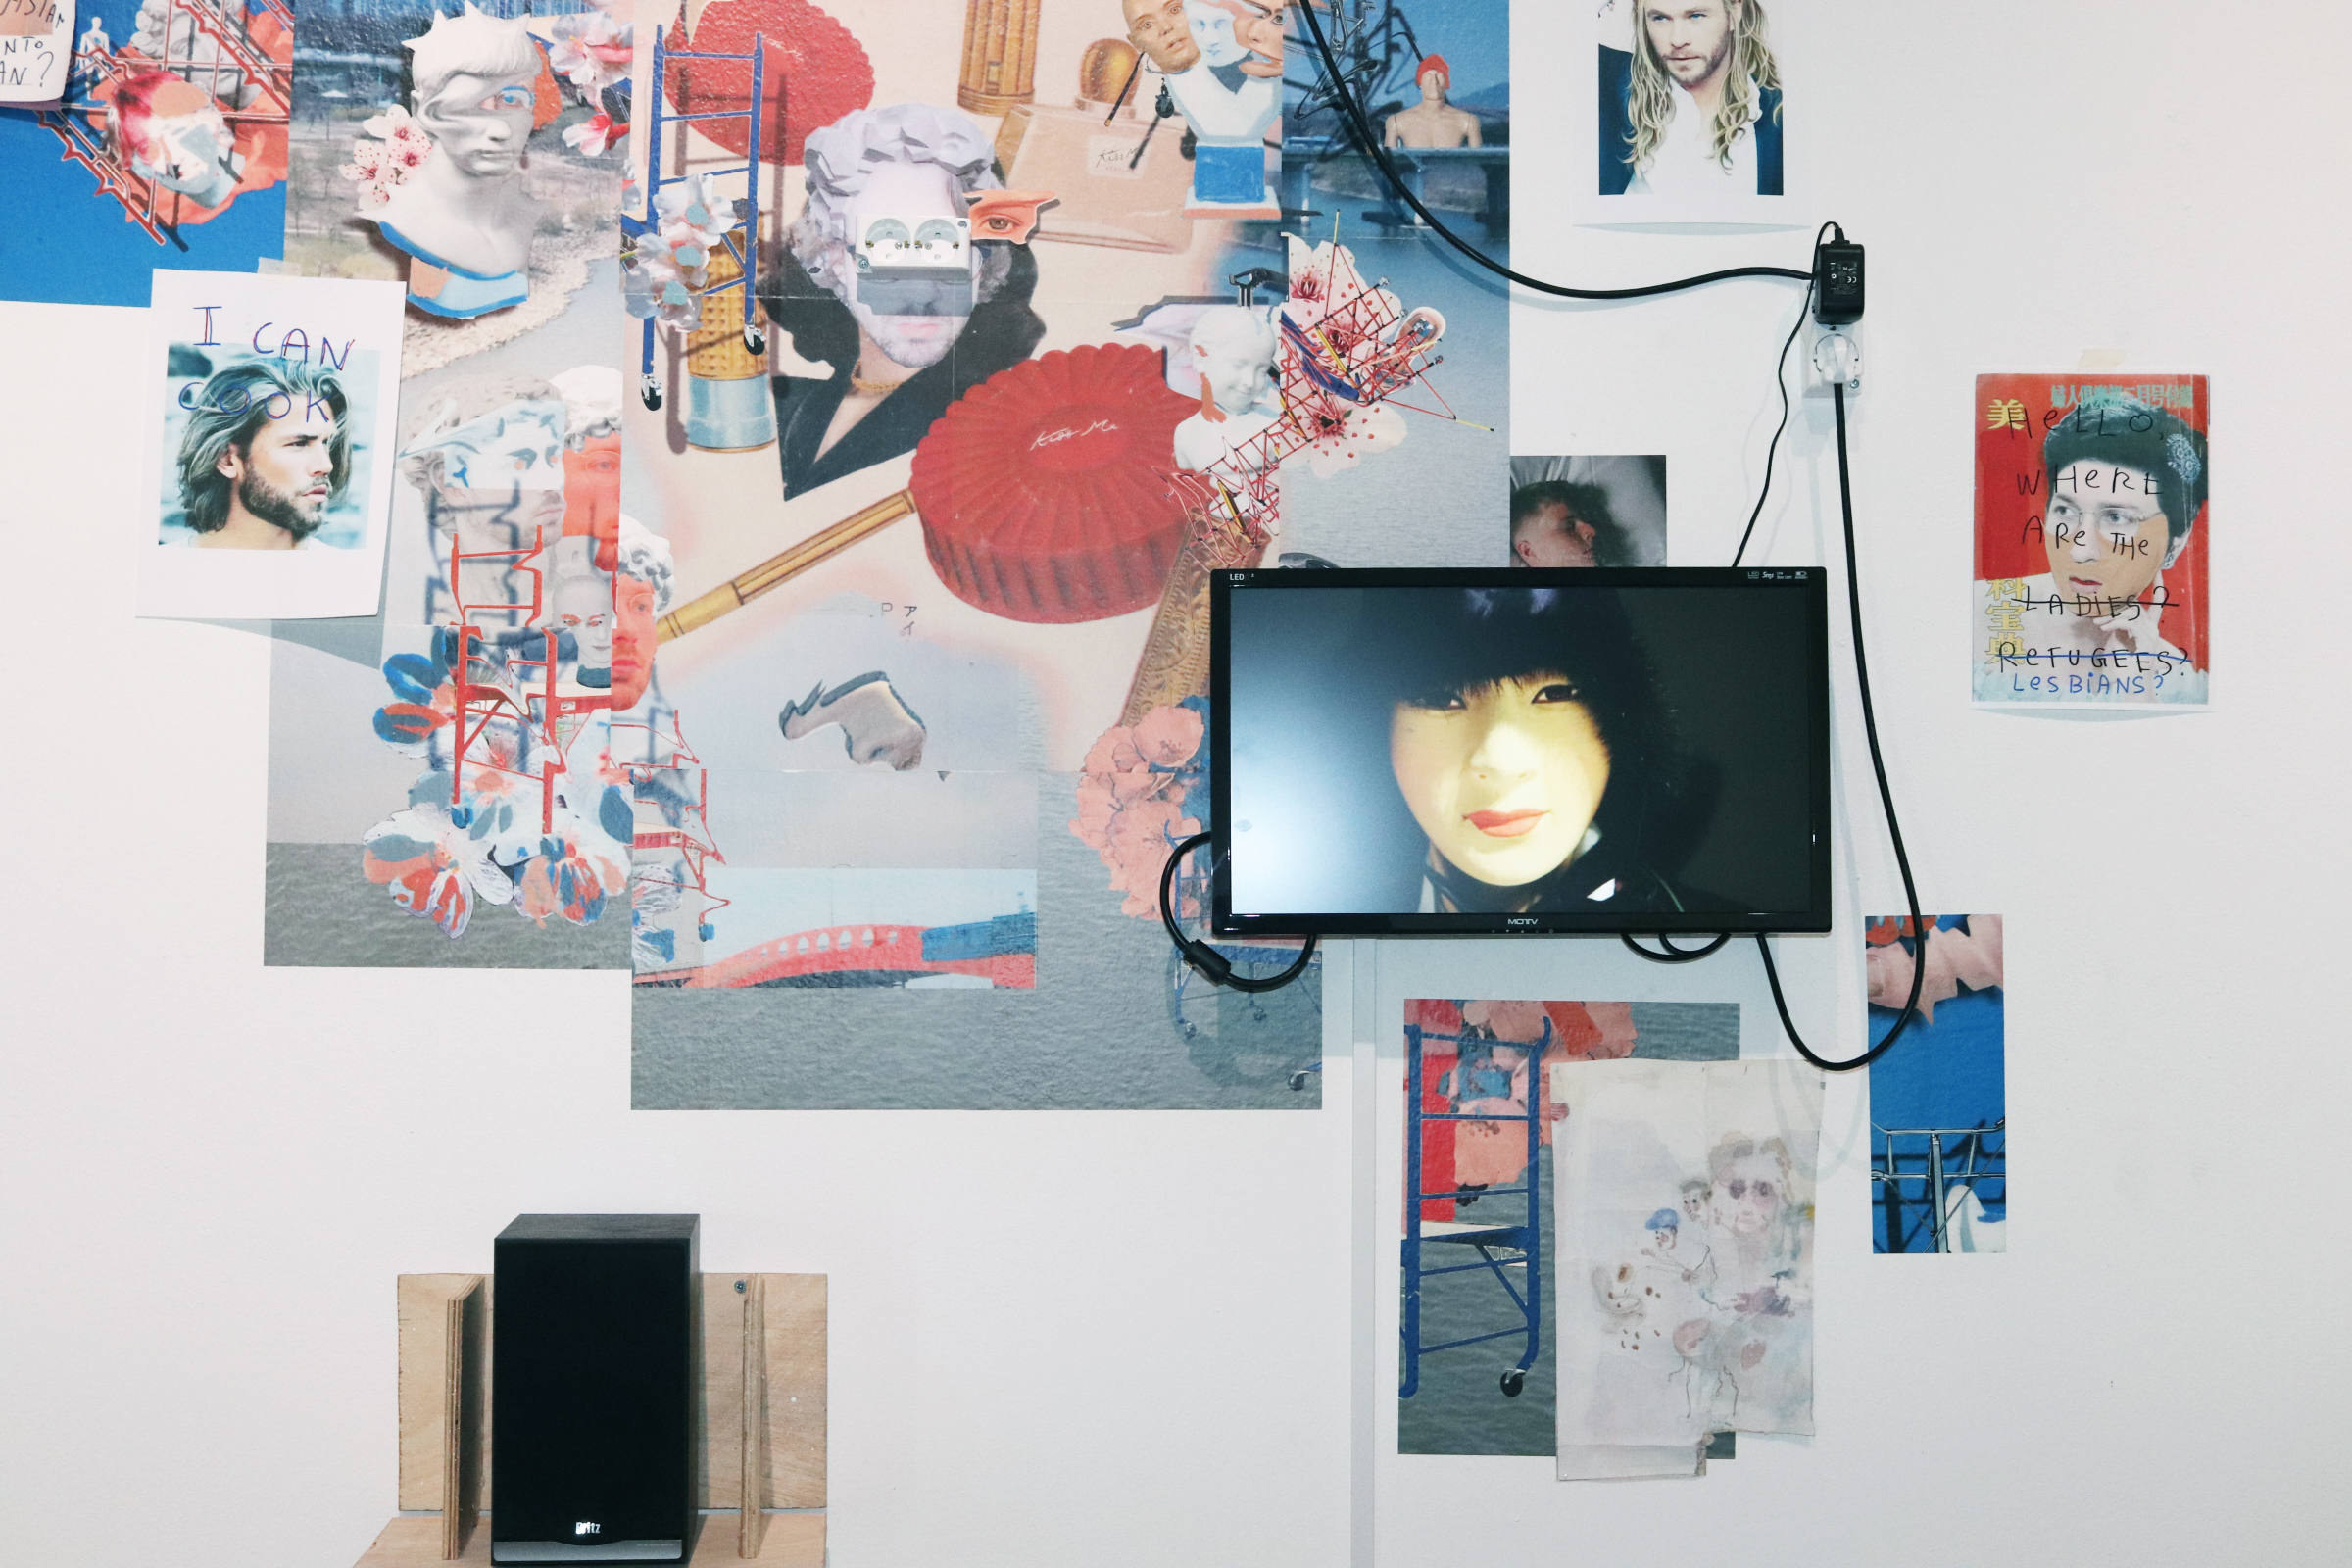 Untitled installation, Happyland William Ludwig Lutgens와의 협동작업, 2019 Video by William Ludwig Lutgens /Print by Che Go Eun